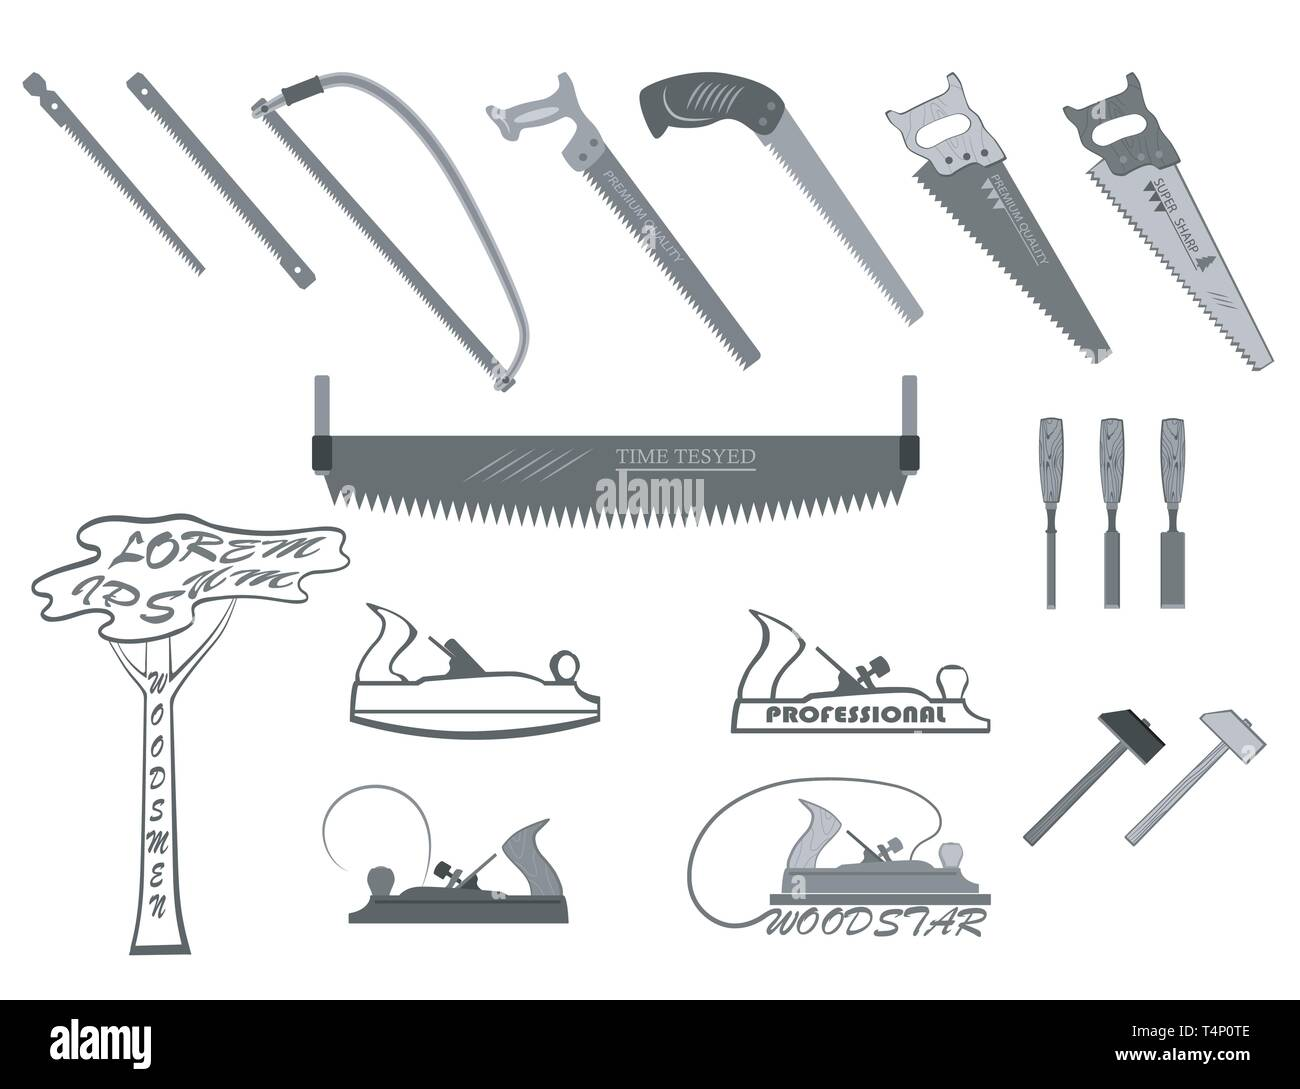 set of tools for working with wood. has a plane, hacksaw, hammers, chisels, and logs. Stock Vector